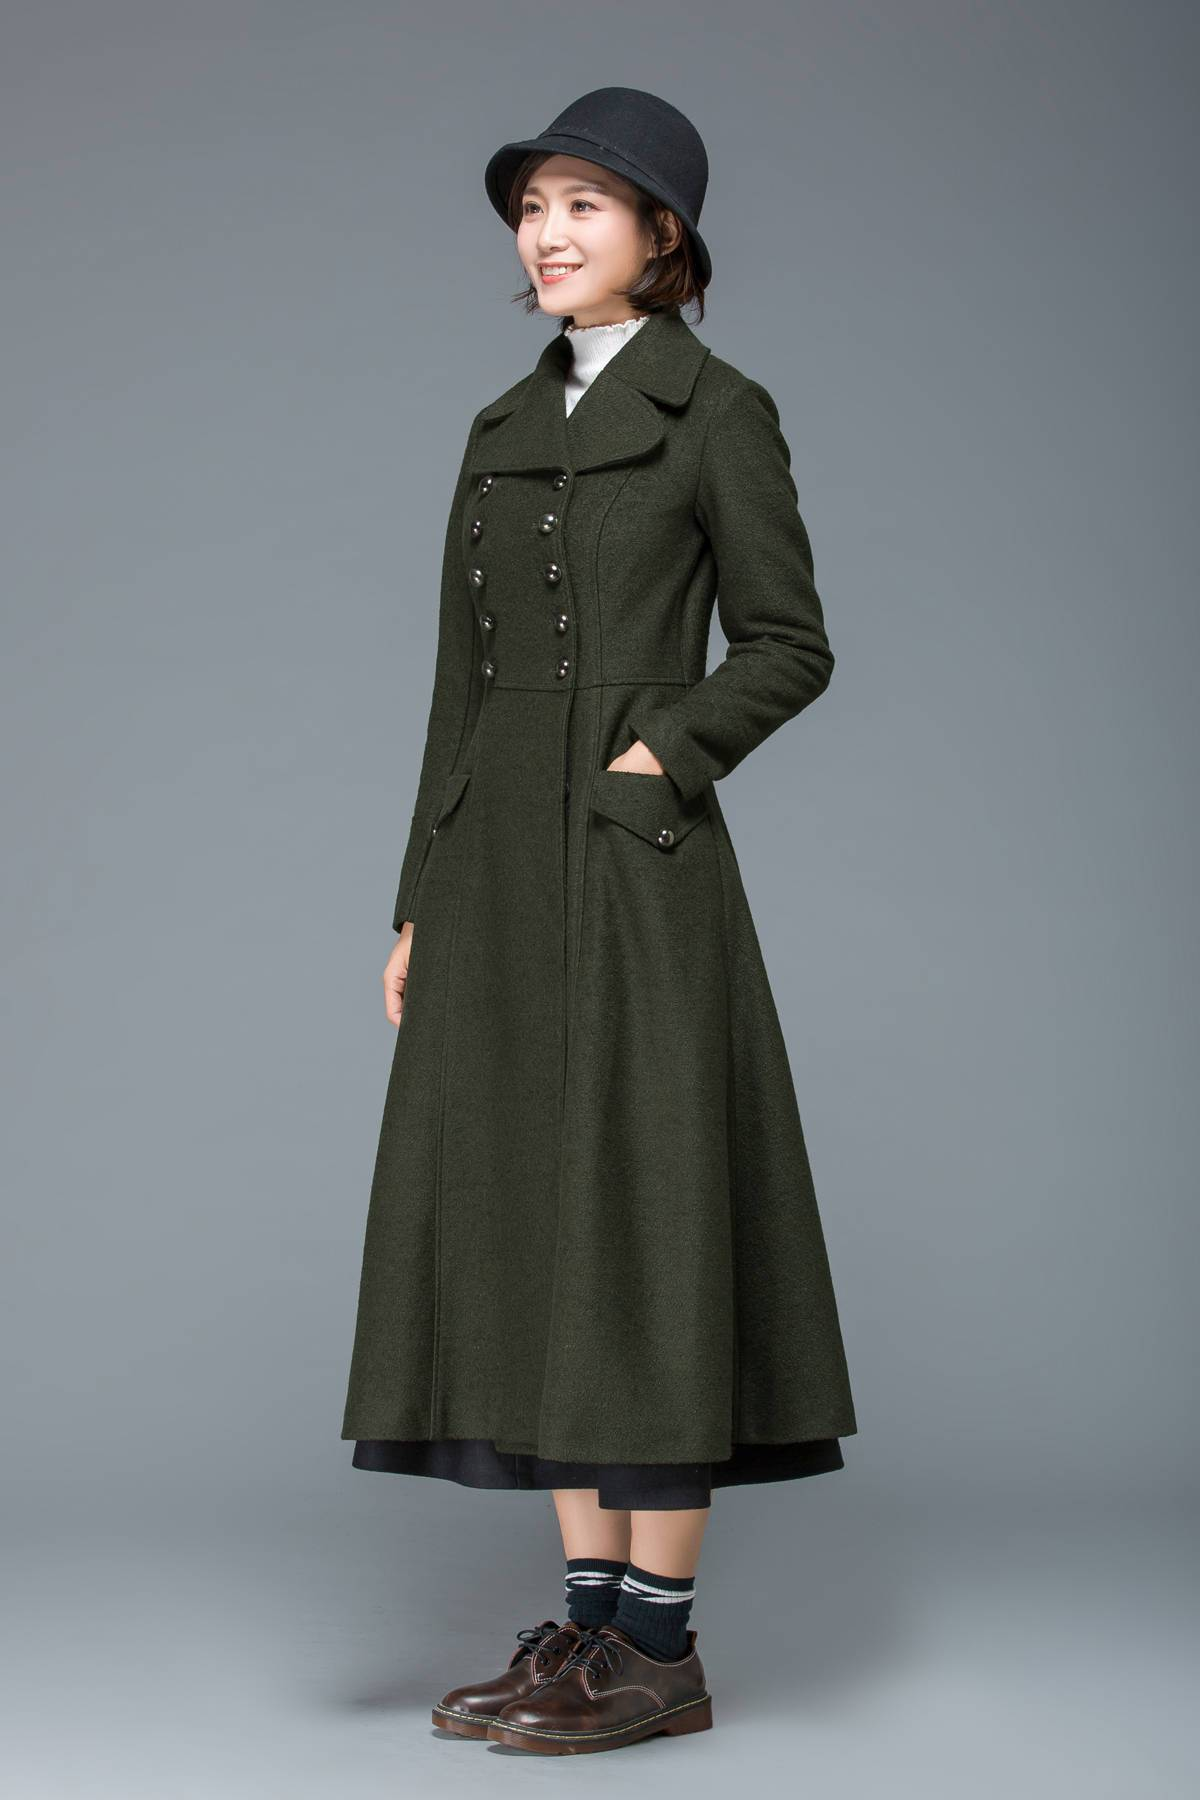 warm winter coat, long coat, wool coat, womens coats, fit and flare coat, double breasted coat, military coat, maxi coat, vintage coat C1168